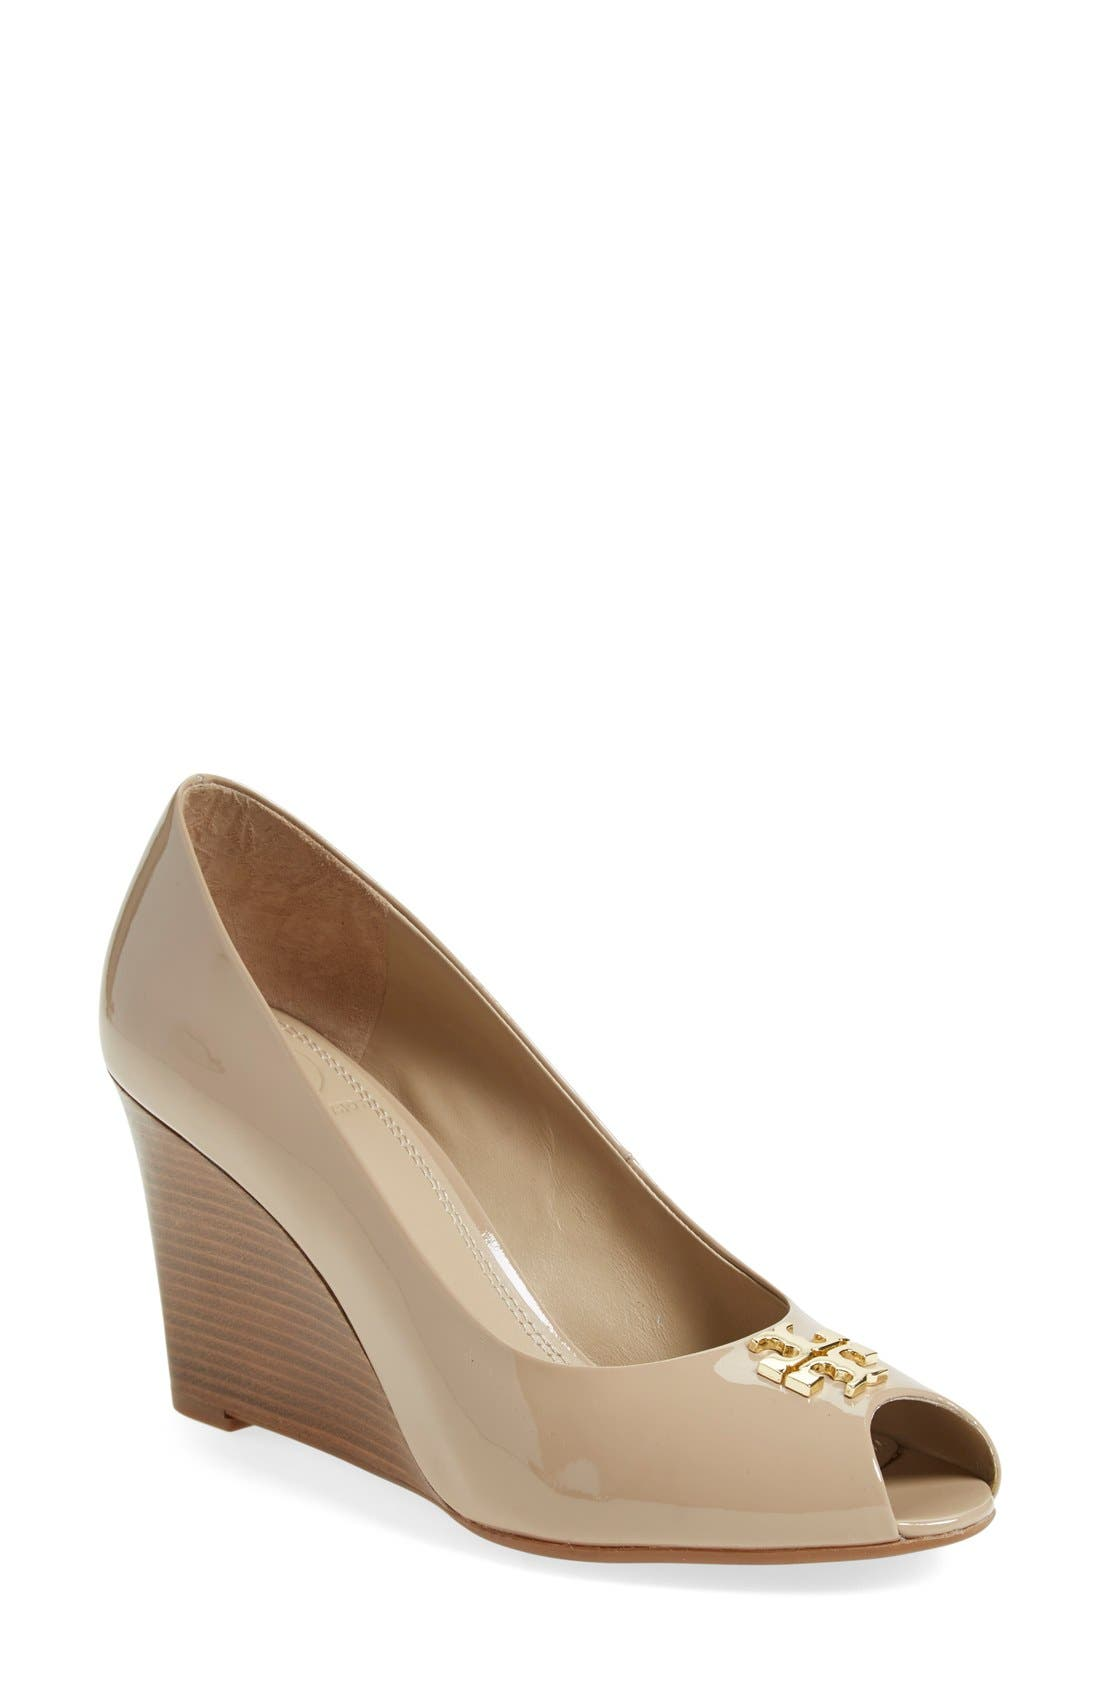 Main Image - Tory Burch 'Jade' Peep Toe Wedge (Women) (Nordstrom